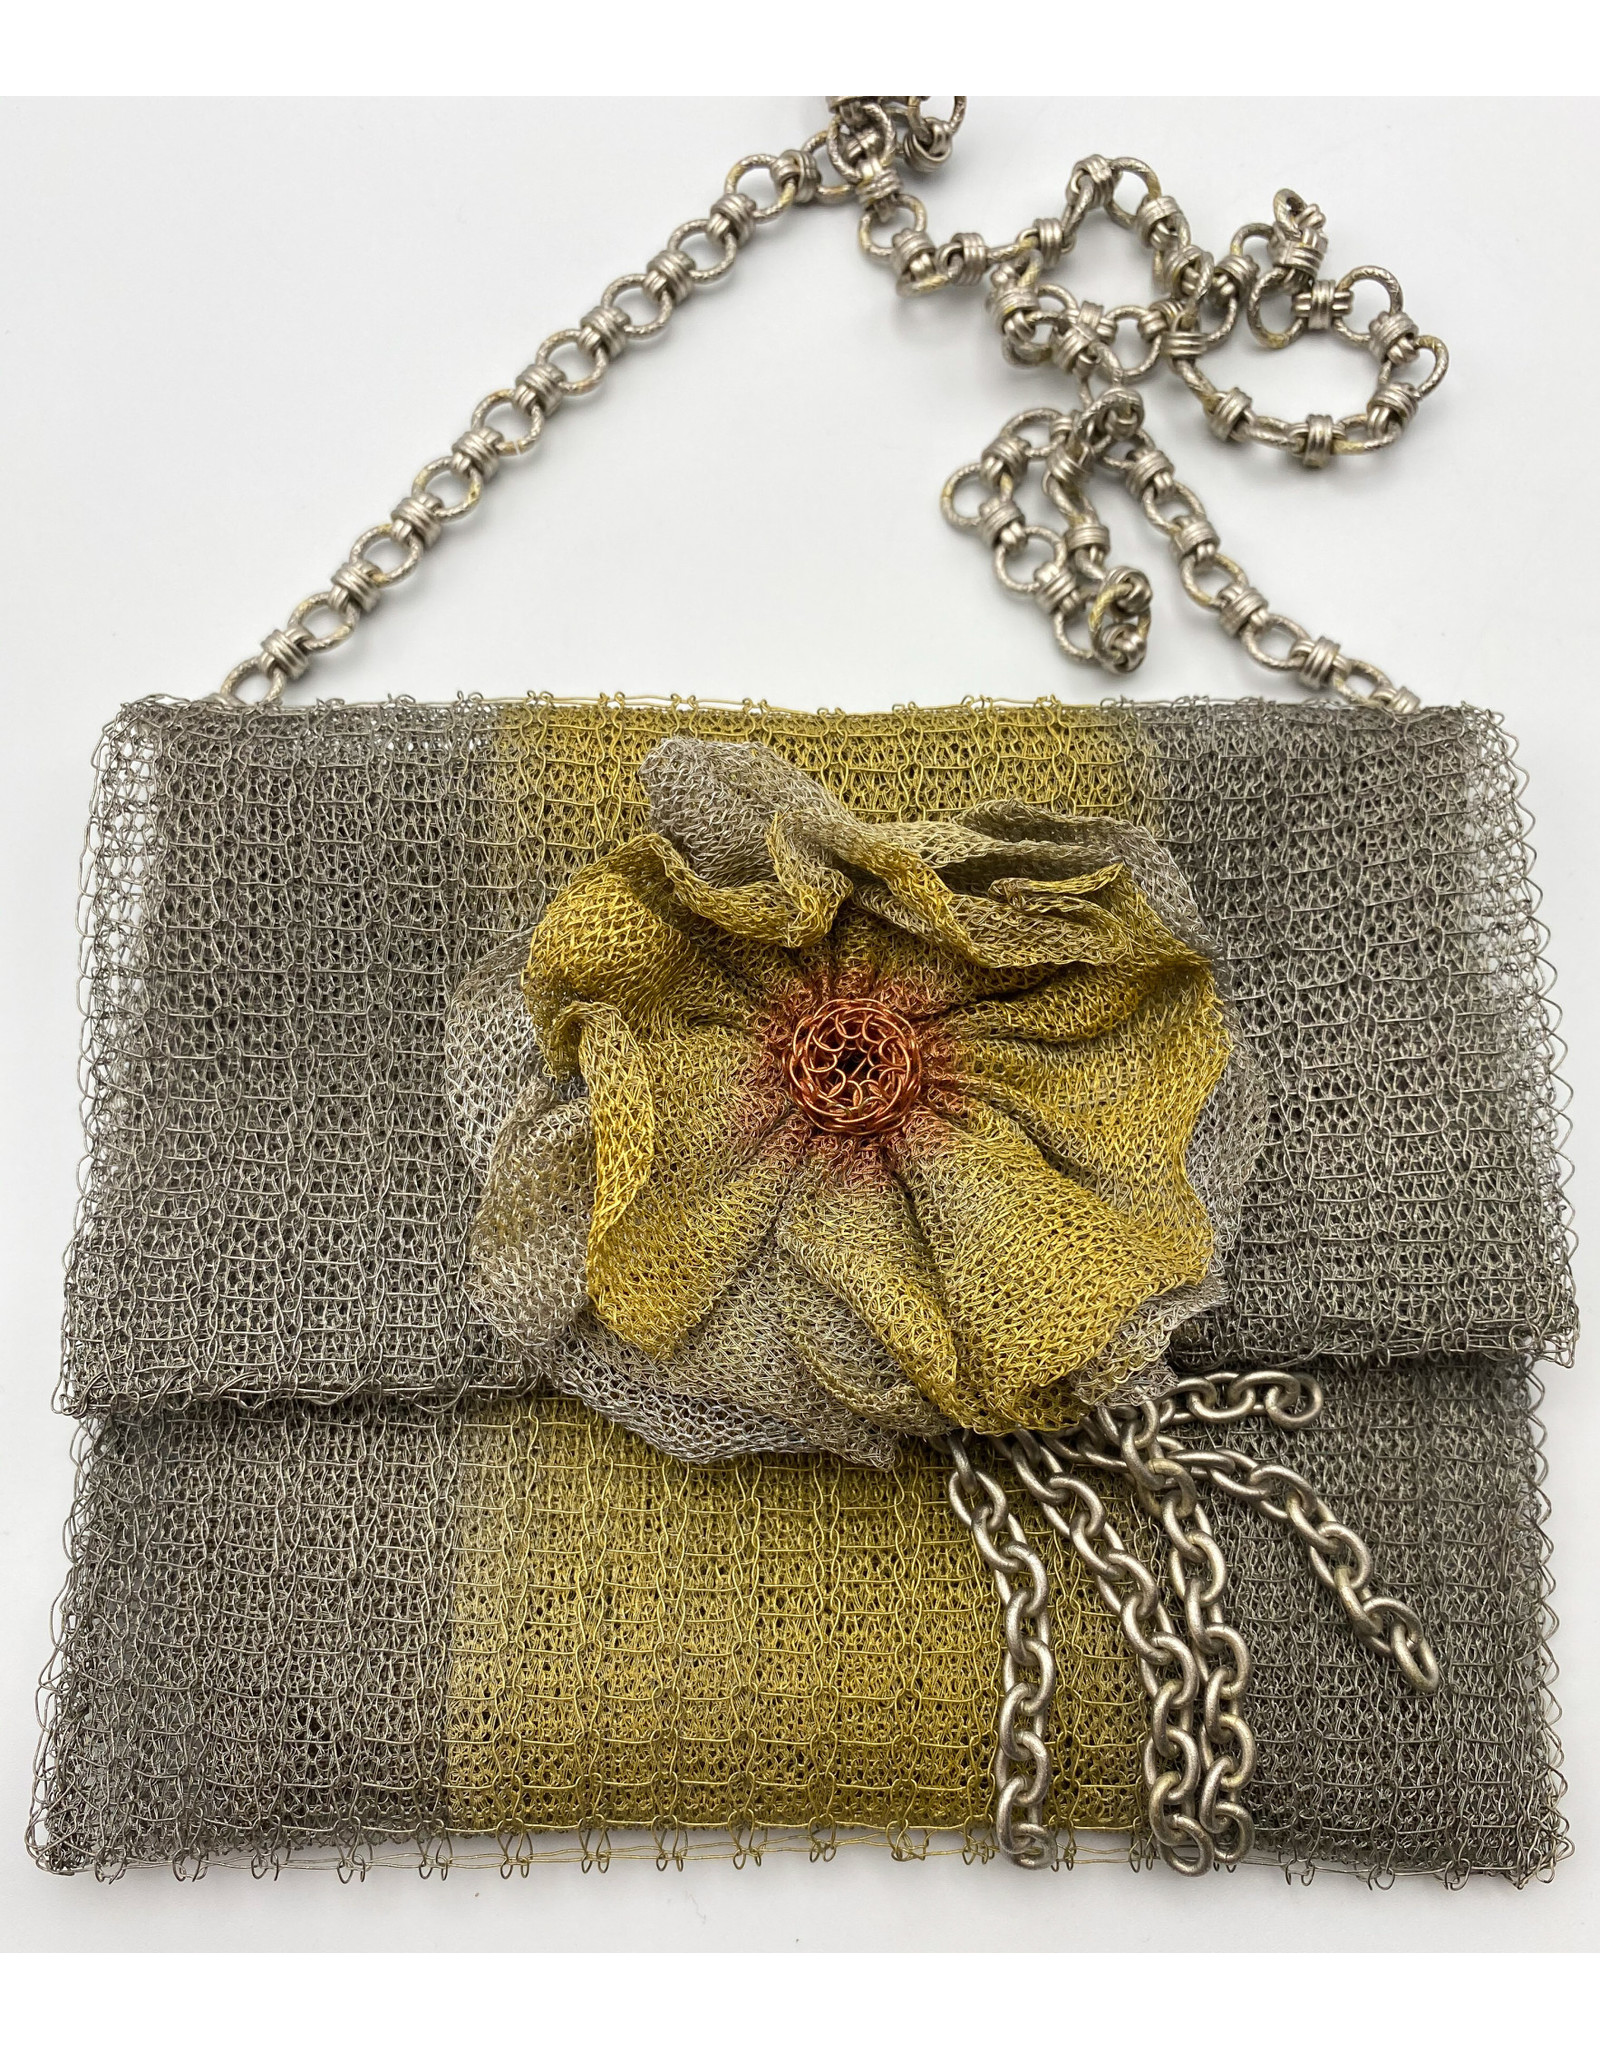 Metal Mesh Evening Bag with Silver Chain